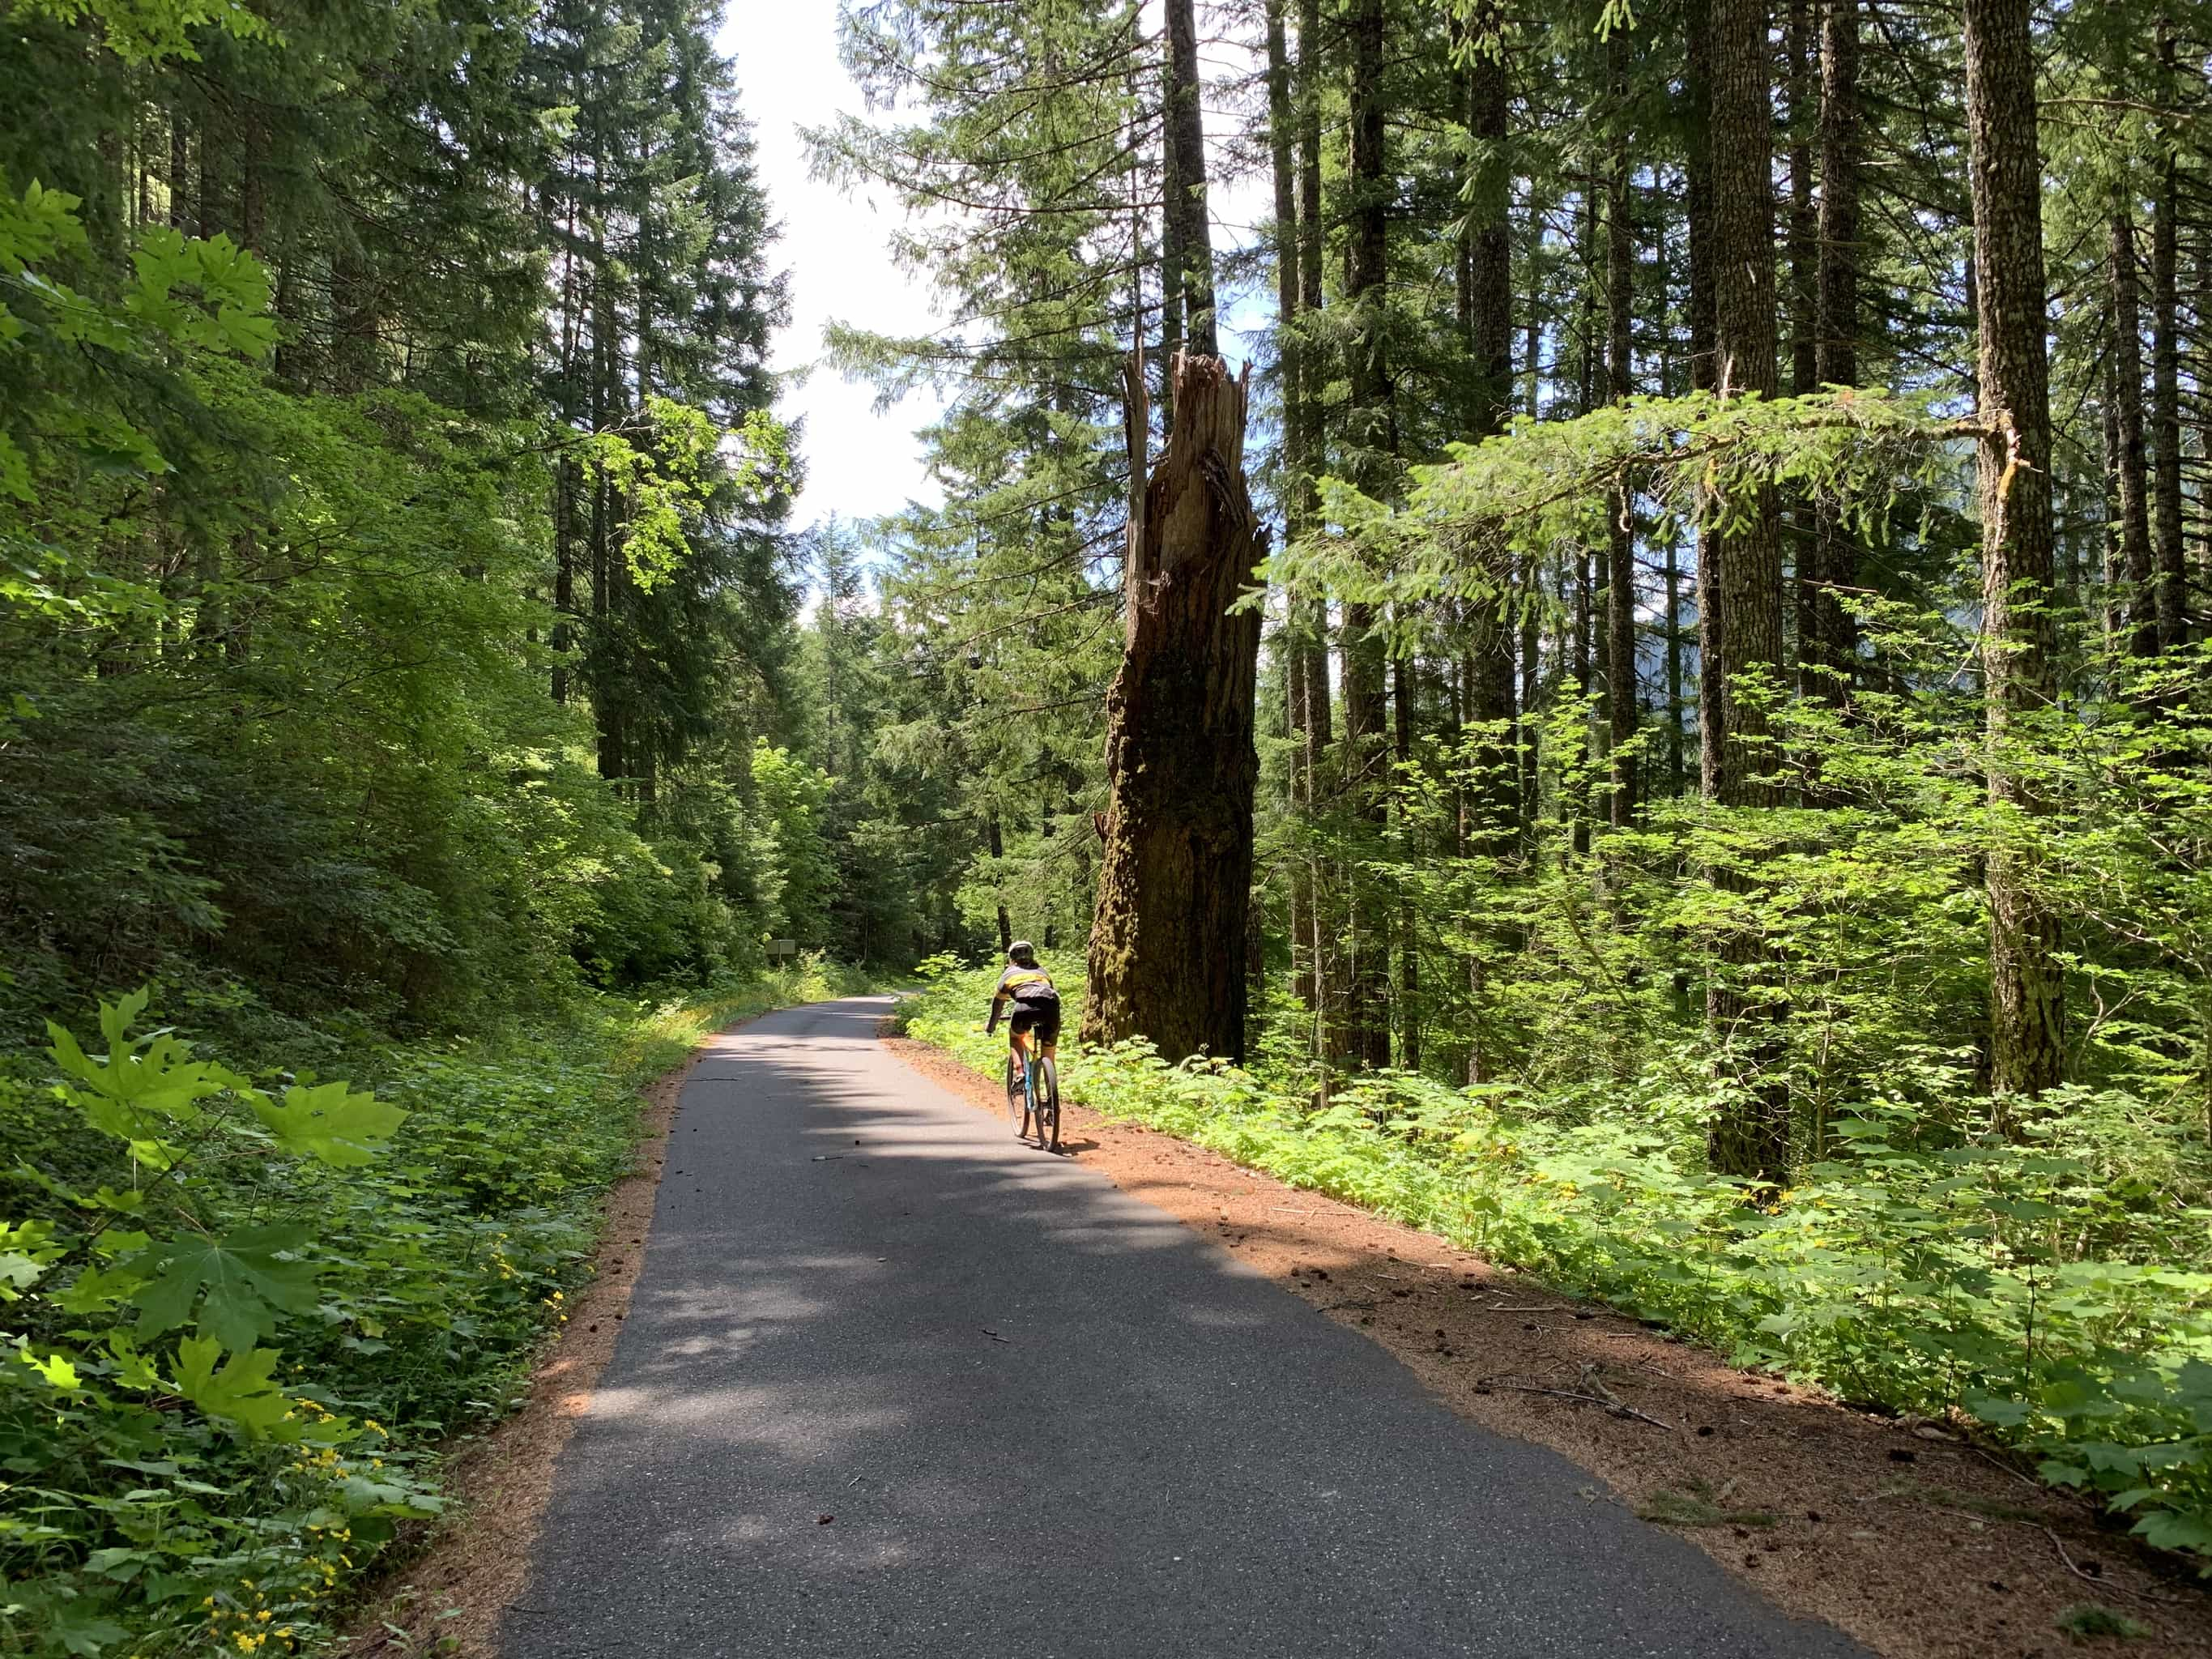 Cyclist riding through old growth forest in Gifford Pinchot National forest near the Columbia River Gorge area.